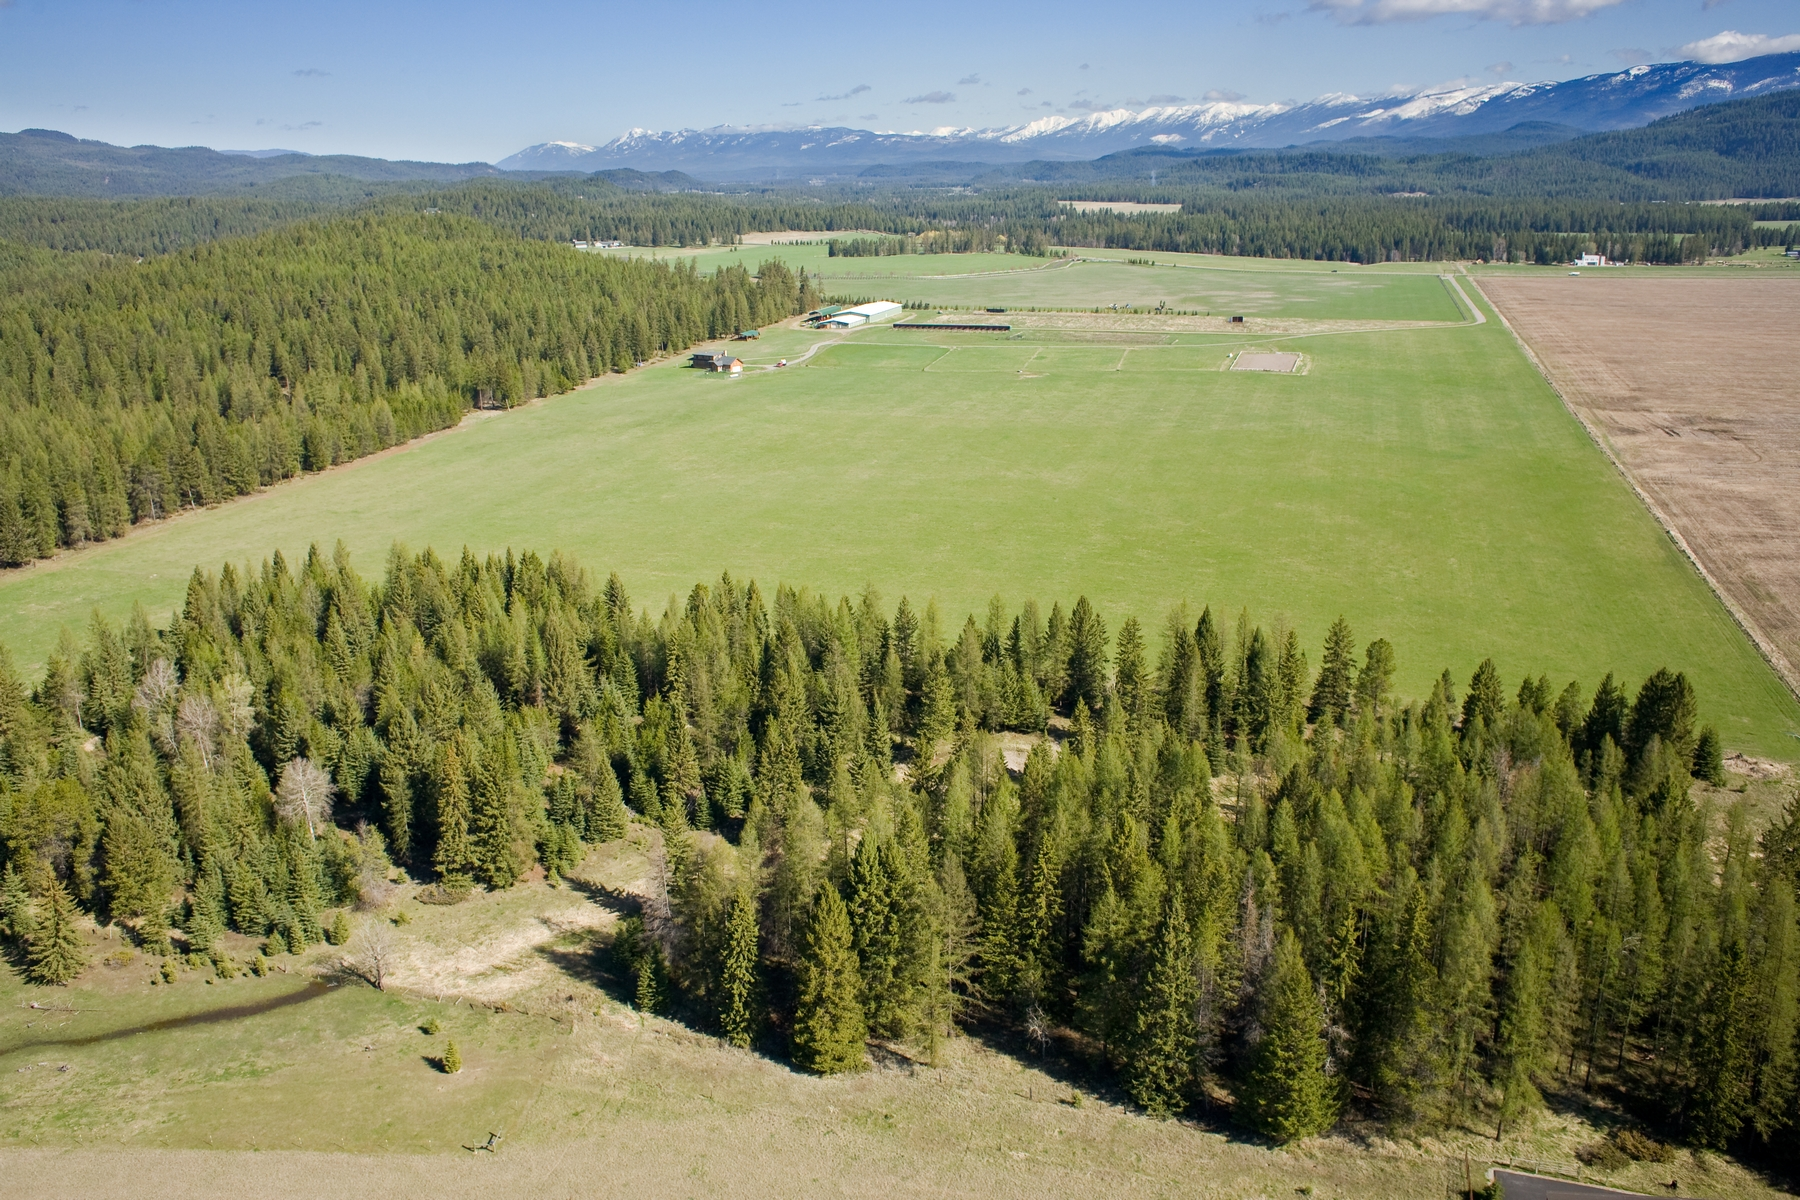 Land for Sale at 573 Twin Bridges Rd , Whitefish, MT 59937 573 Twin Bridges Rd Whitefish, Montana, 59937 United States